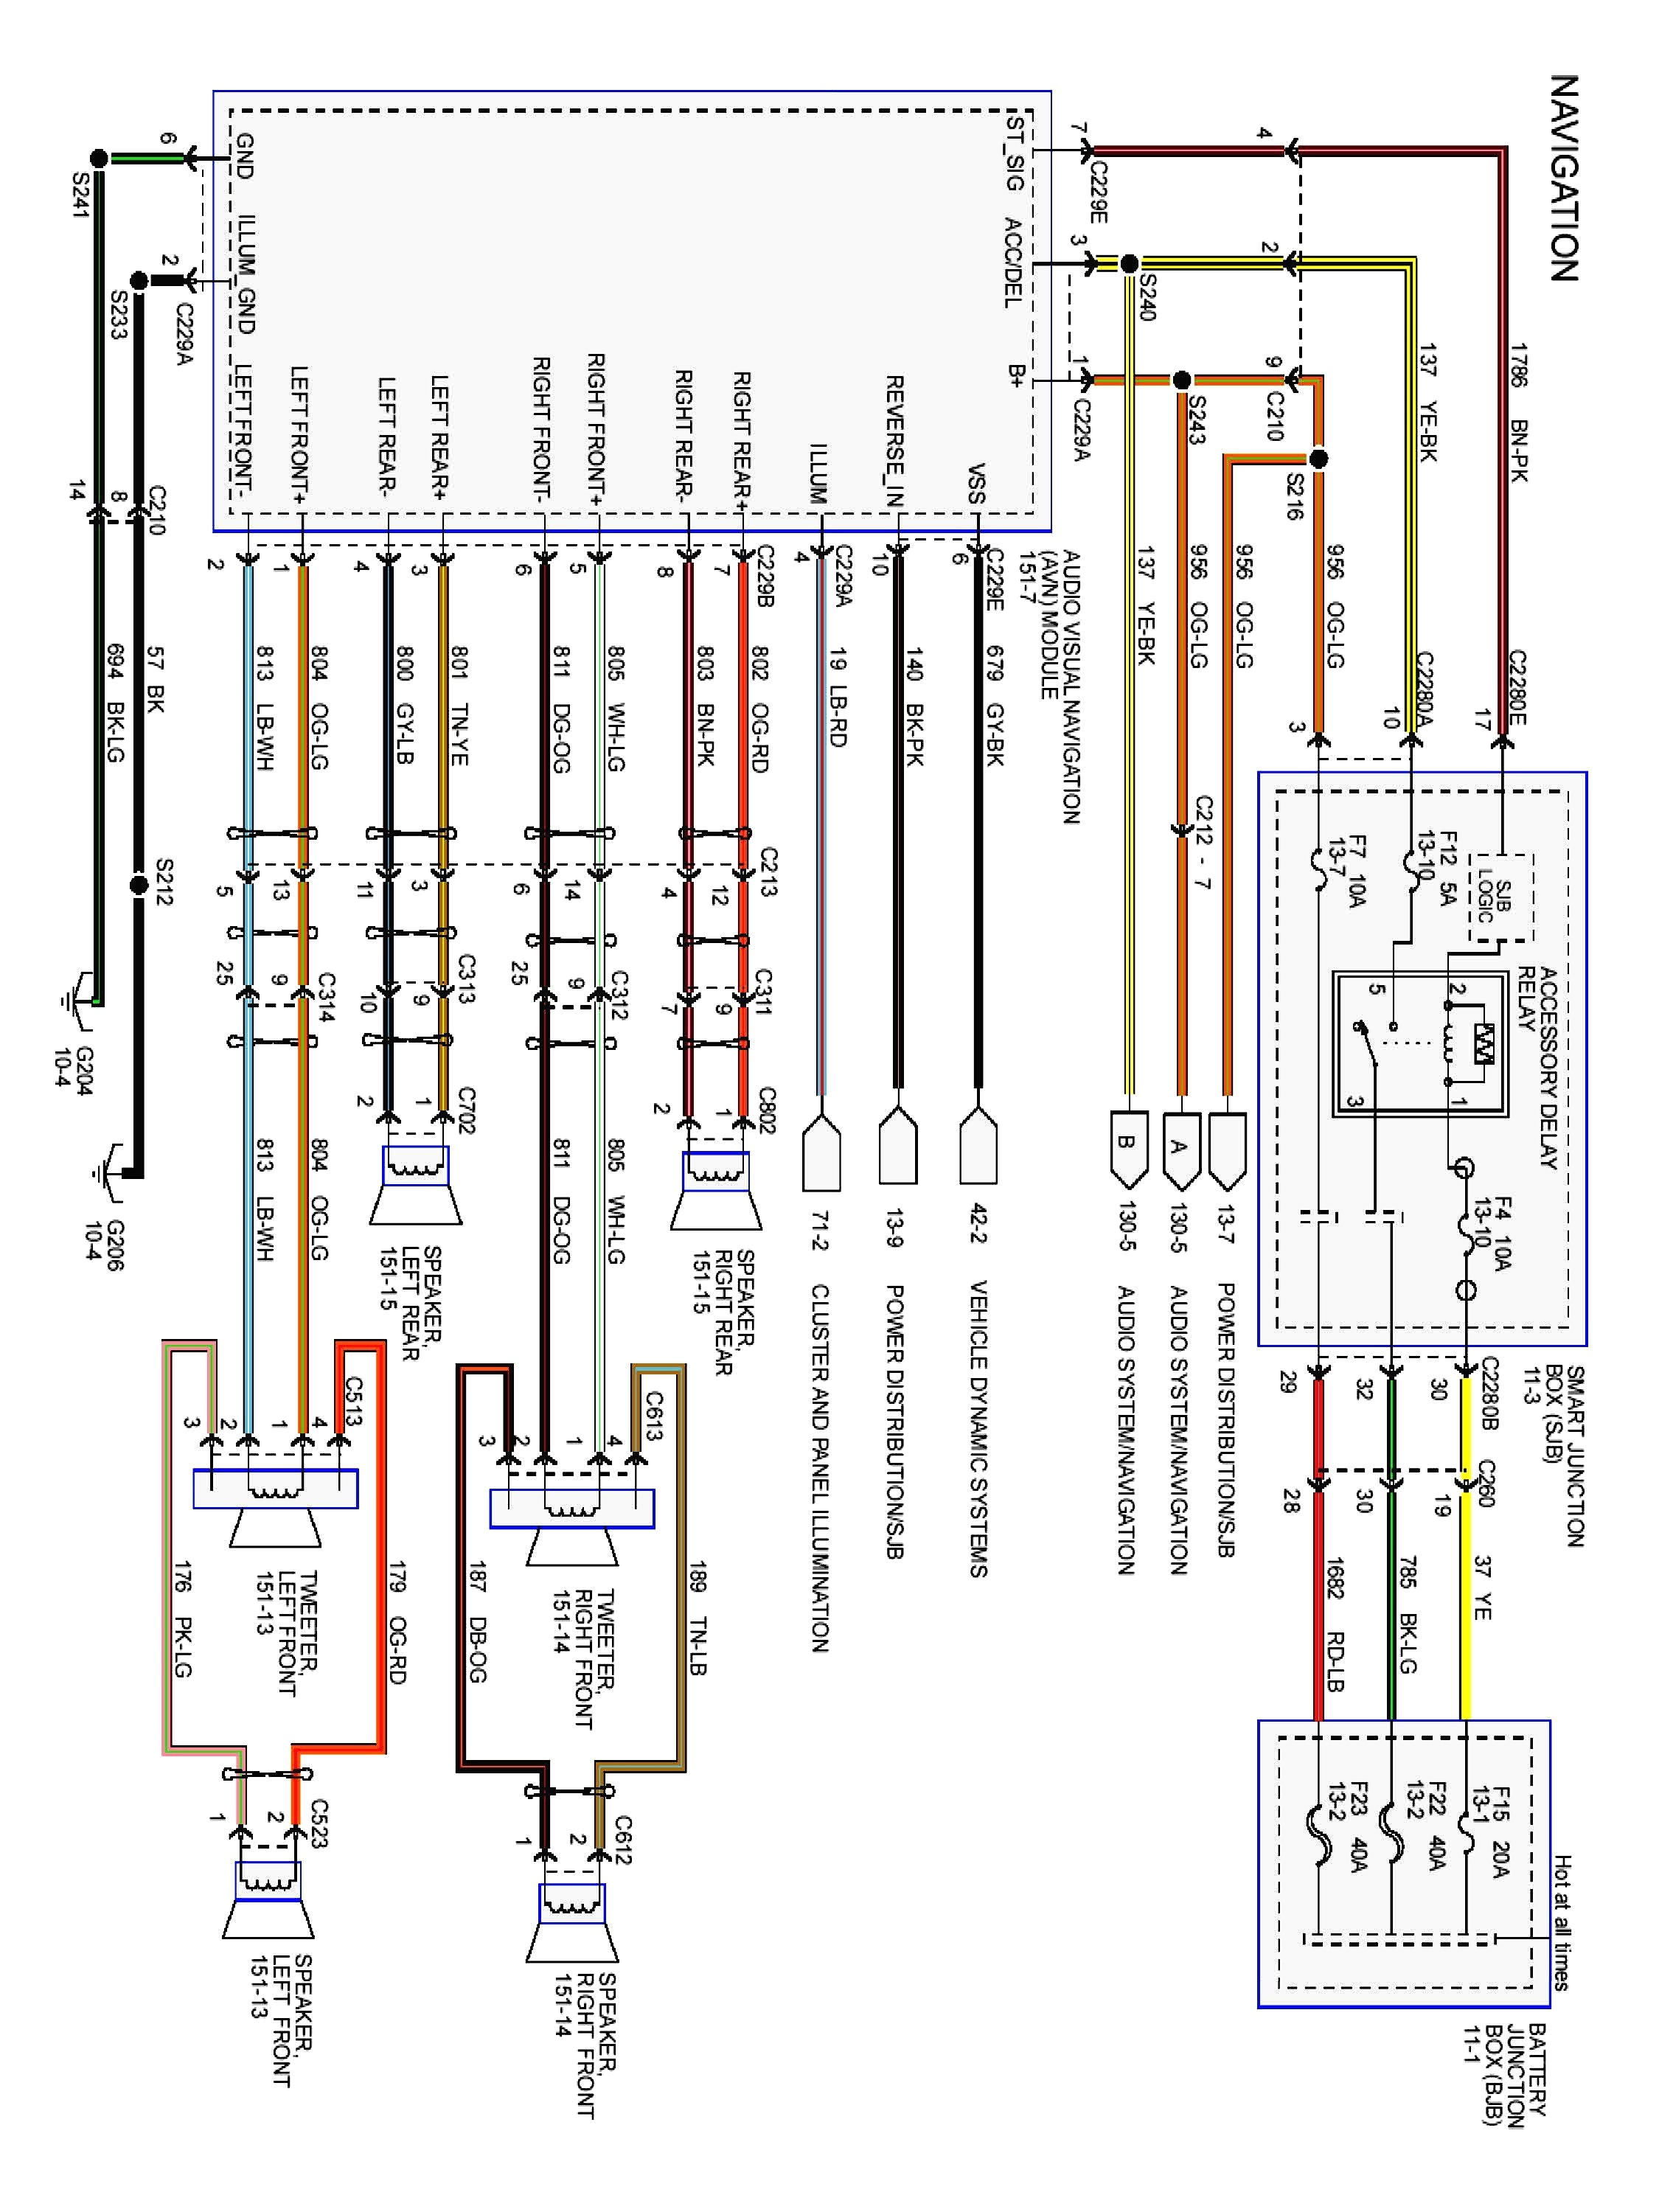 DIAGRAM] 97 Ford Expedition Radio Wiring Diagram FULL Version HD Quality Wiring  Diagram - ORBITALDIAGRAMS.SAINTMIHIEL-TOURISME.FRSaintmihiel-tourisme.fr